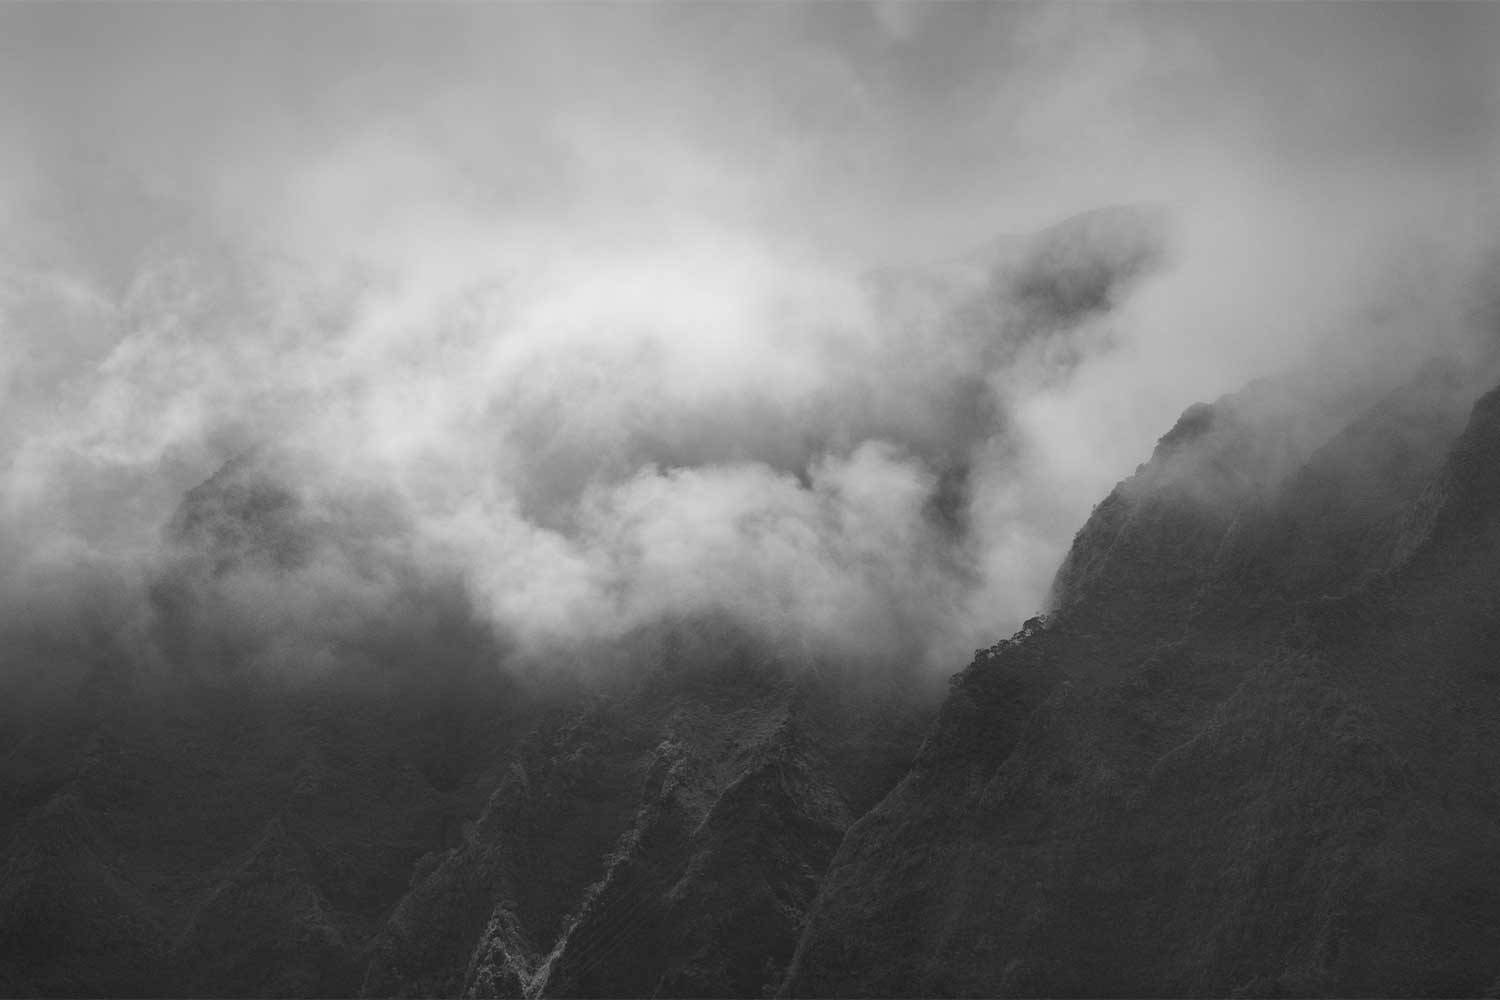 Black and white image of clouds covering the peaks of the Koolau mountain range